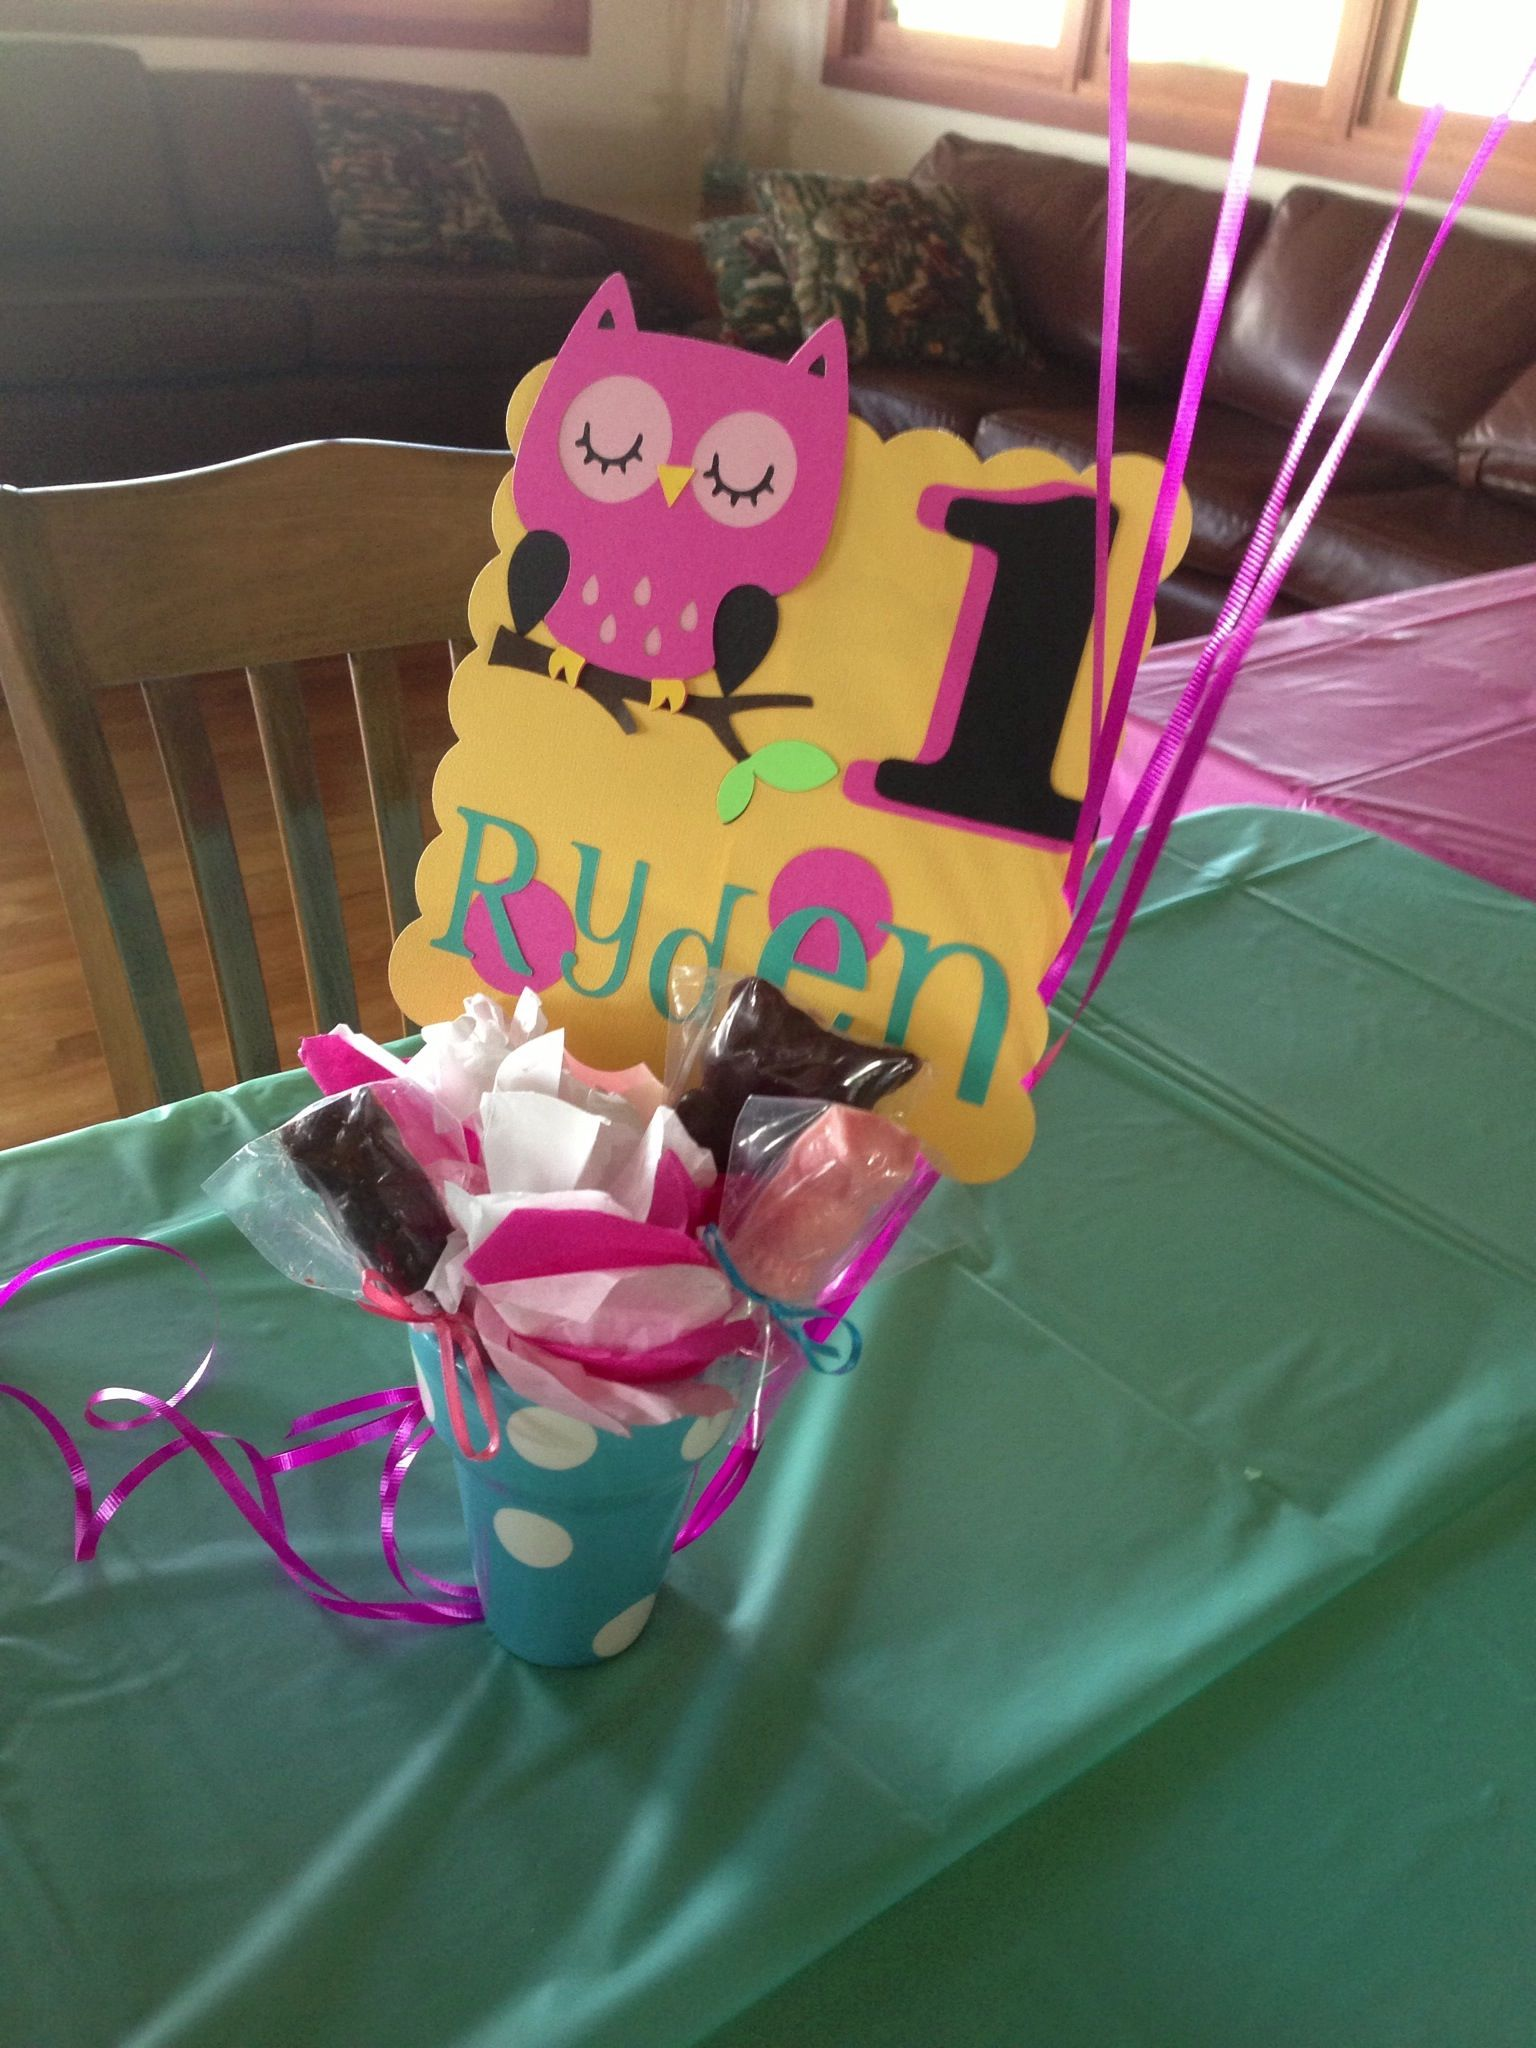 Centerpieces - owl signs with chocolate owl lollipops in white and dark chocolate in small flower planters/buckets #owlparty Rydens first birthday